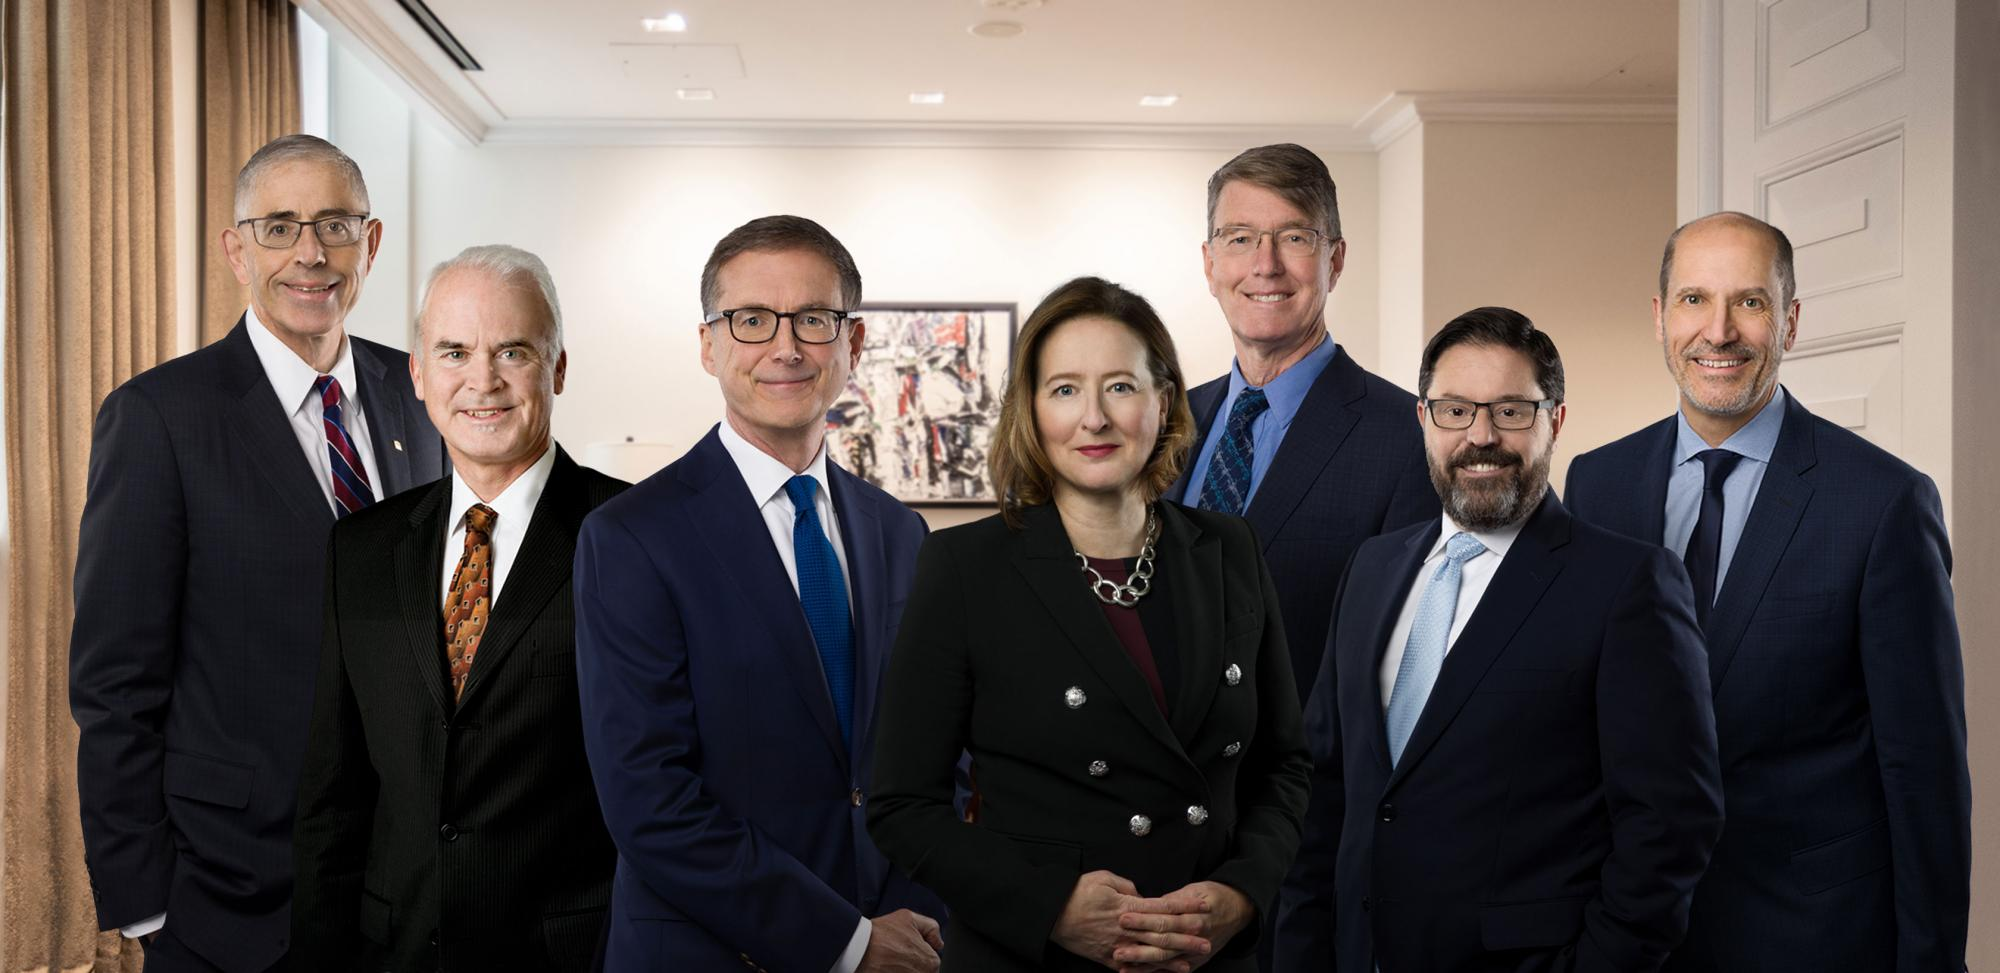 The seven members of the Bank's Executive Council formally standing together outside a meeting room at head office.